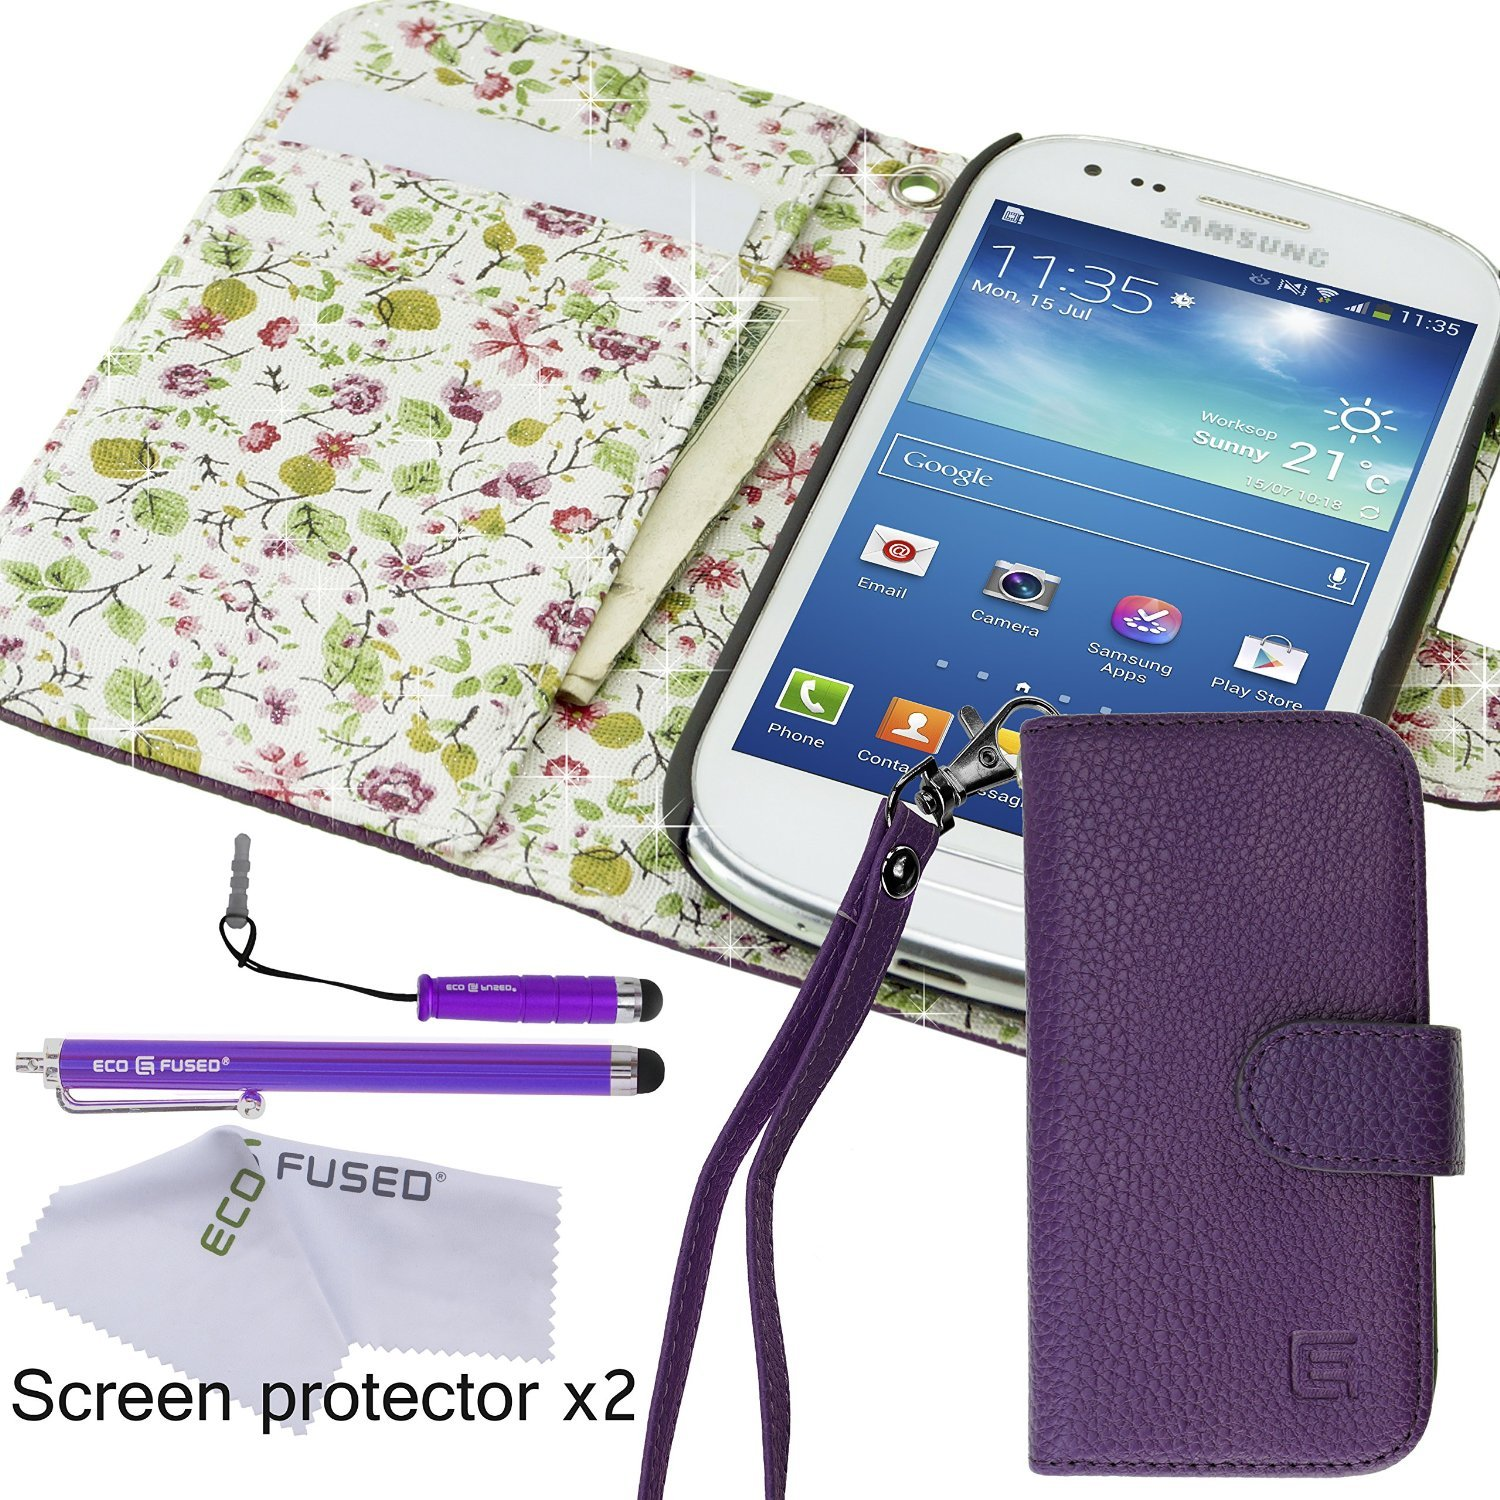 samsung galaxy s3 mini case bundle including 1 faux leather cover with floral interior purple. Black Bedroom Furniture Sets. Home Design Ideas